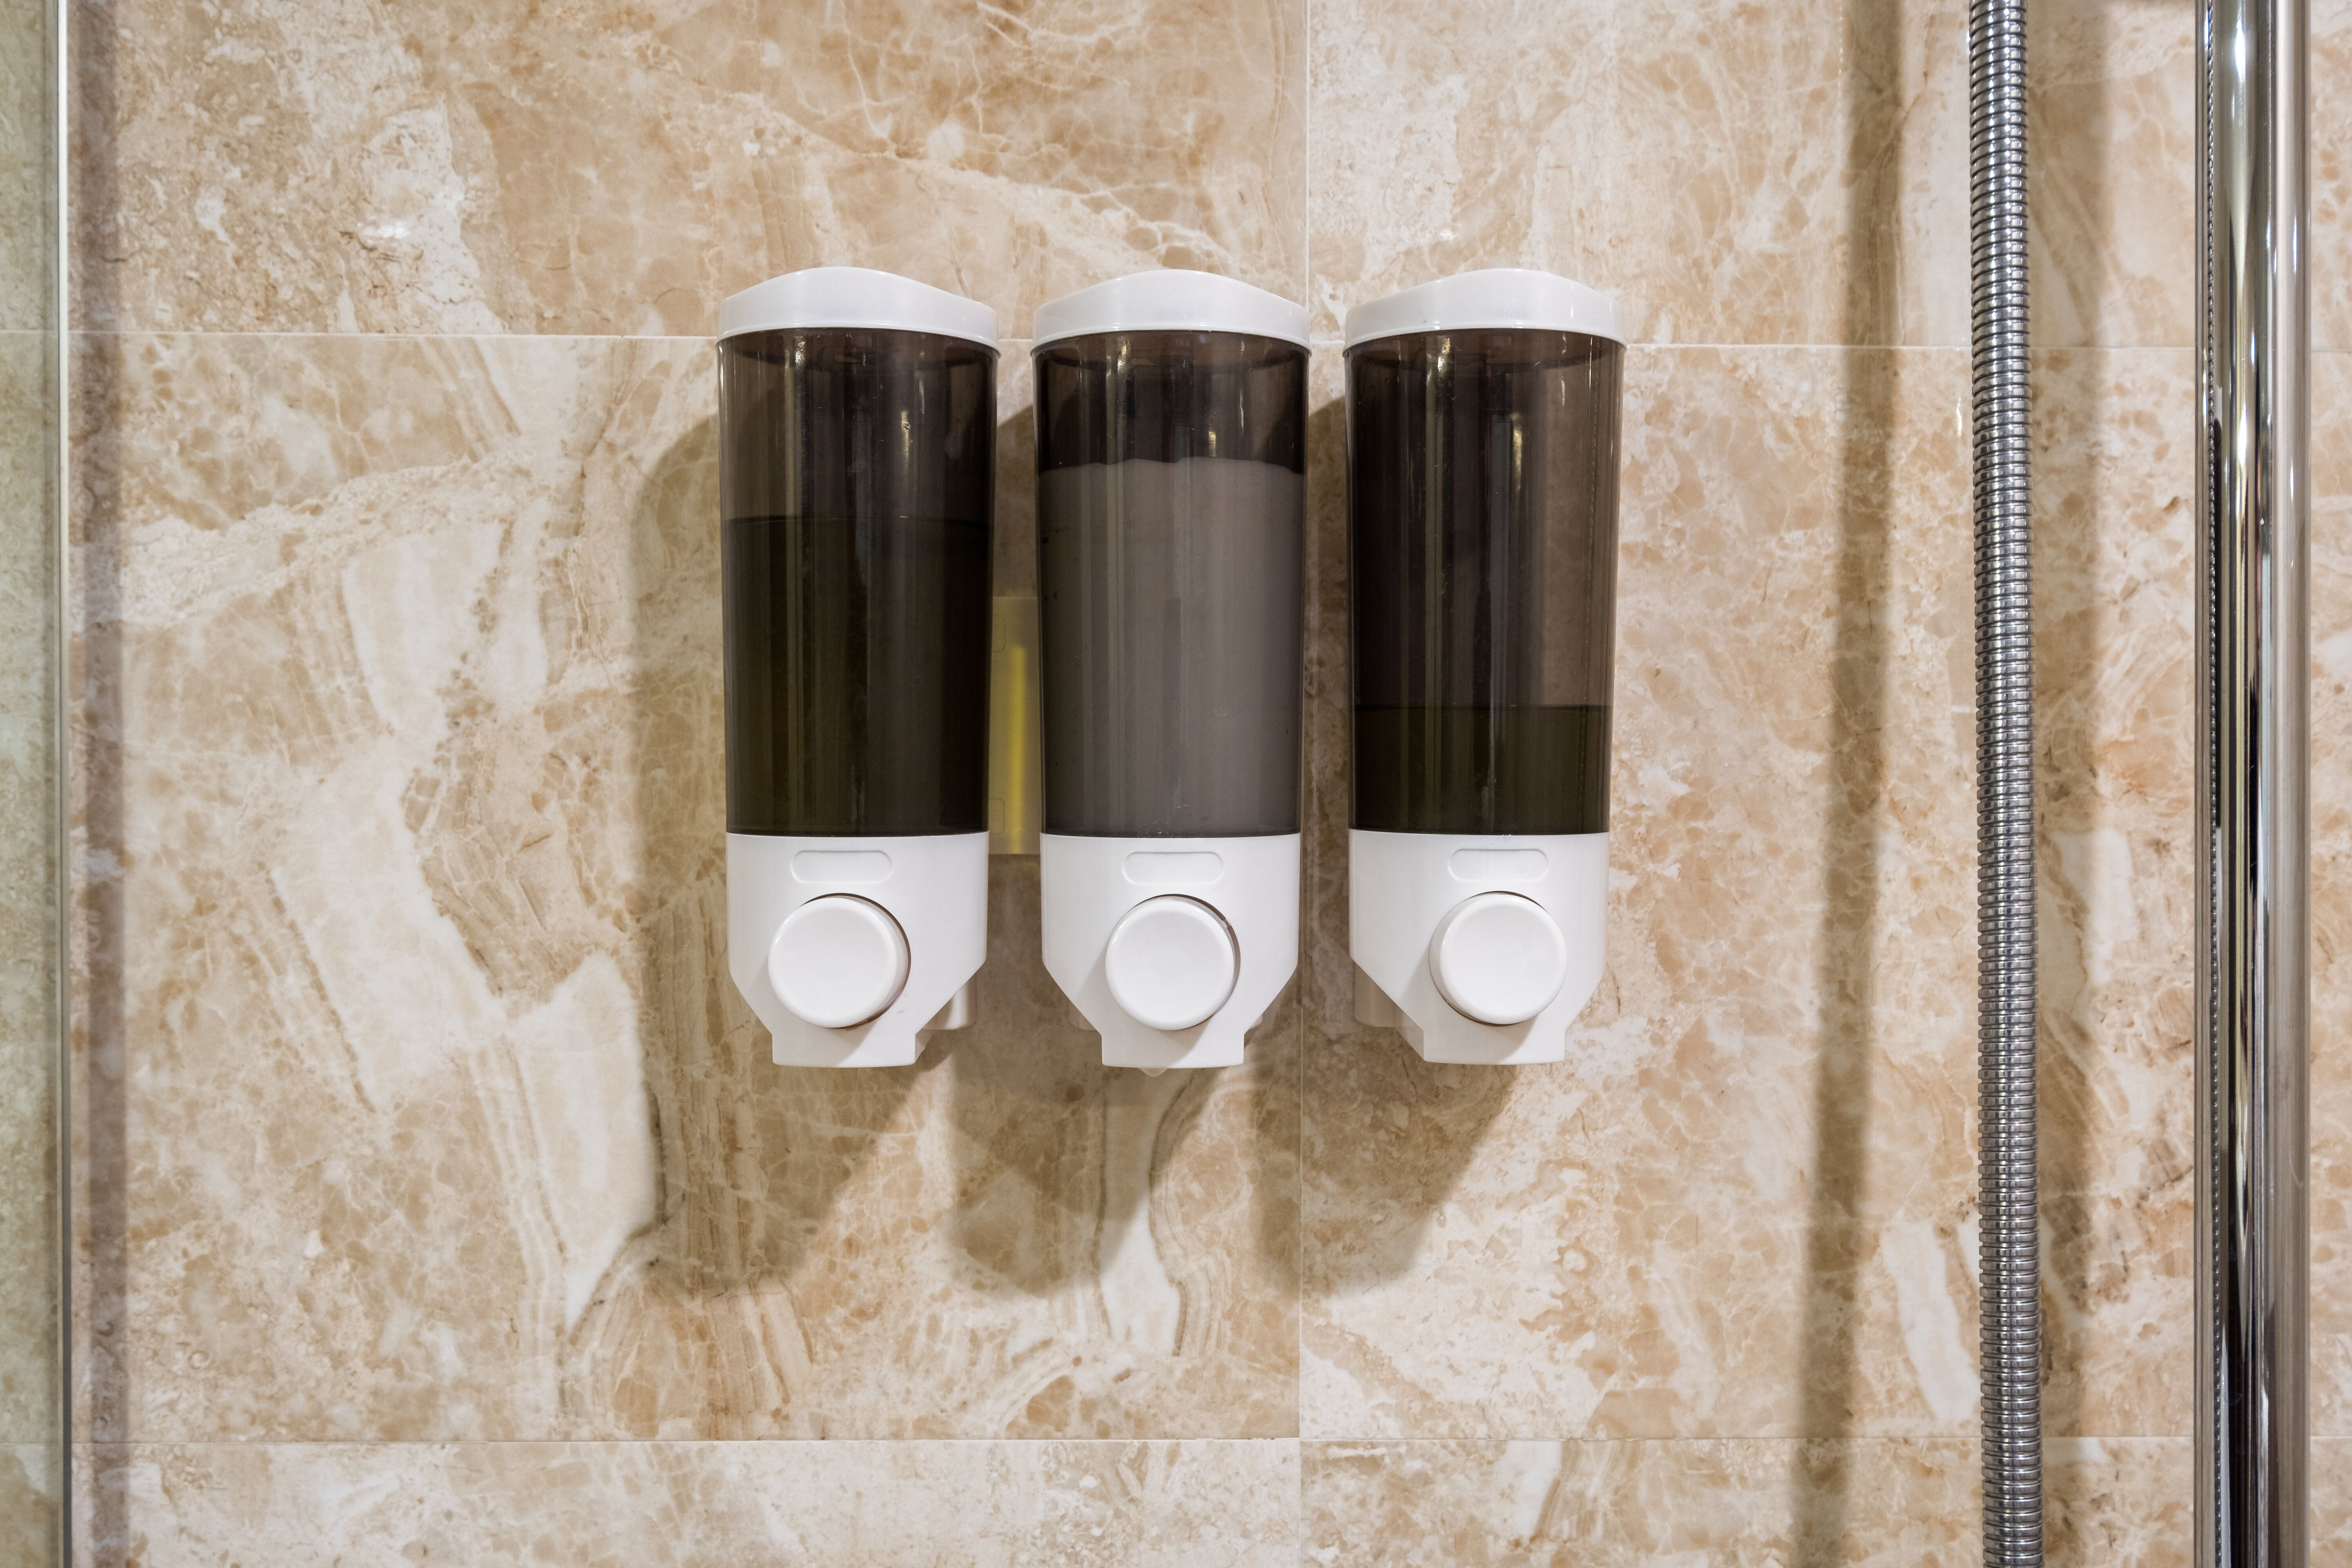 IHG hotels will switch to bulk-sized, refillable amenities by 2021. Some hotels have already moved to larger bottles and wall